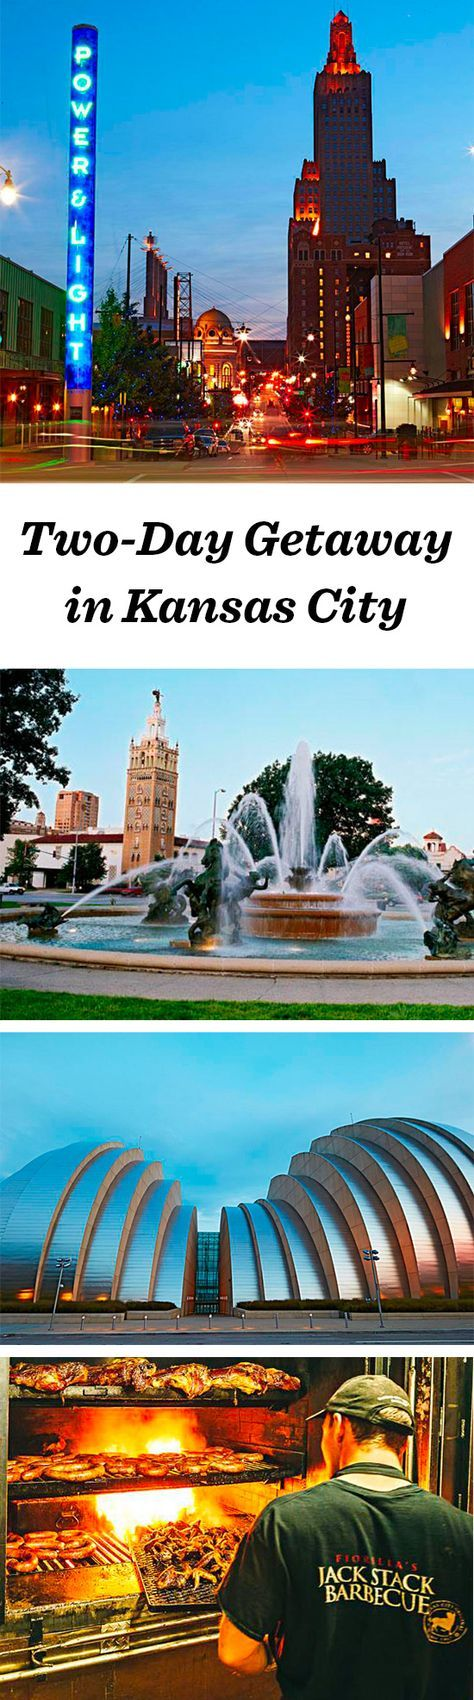 10 best KANSAS CITY images on Pinterest   Kansas city, Diners and ...